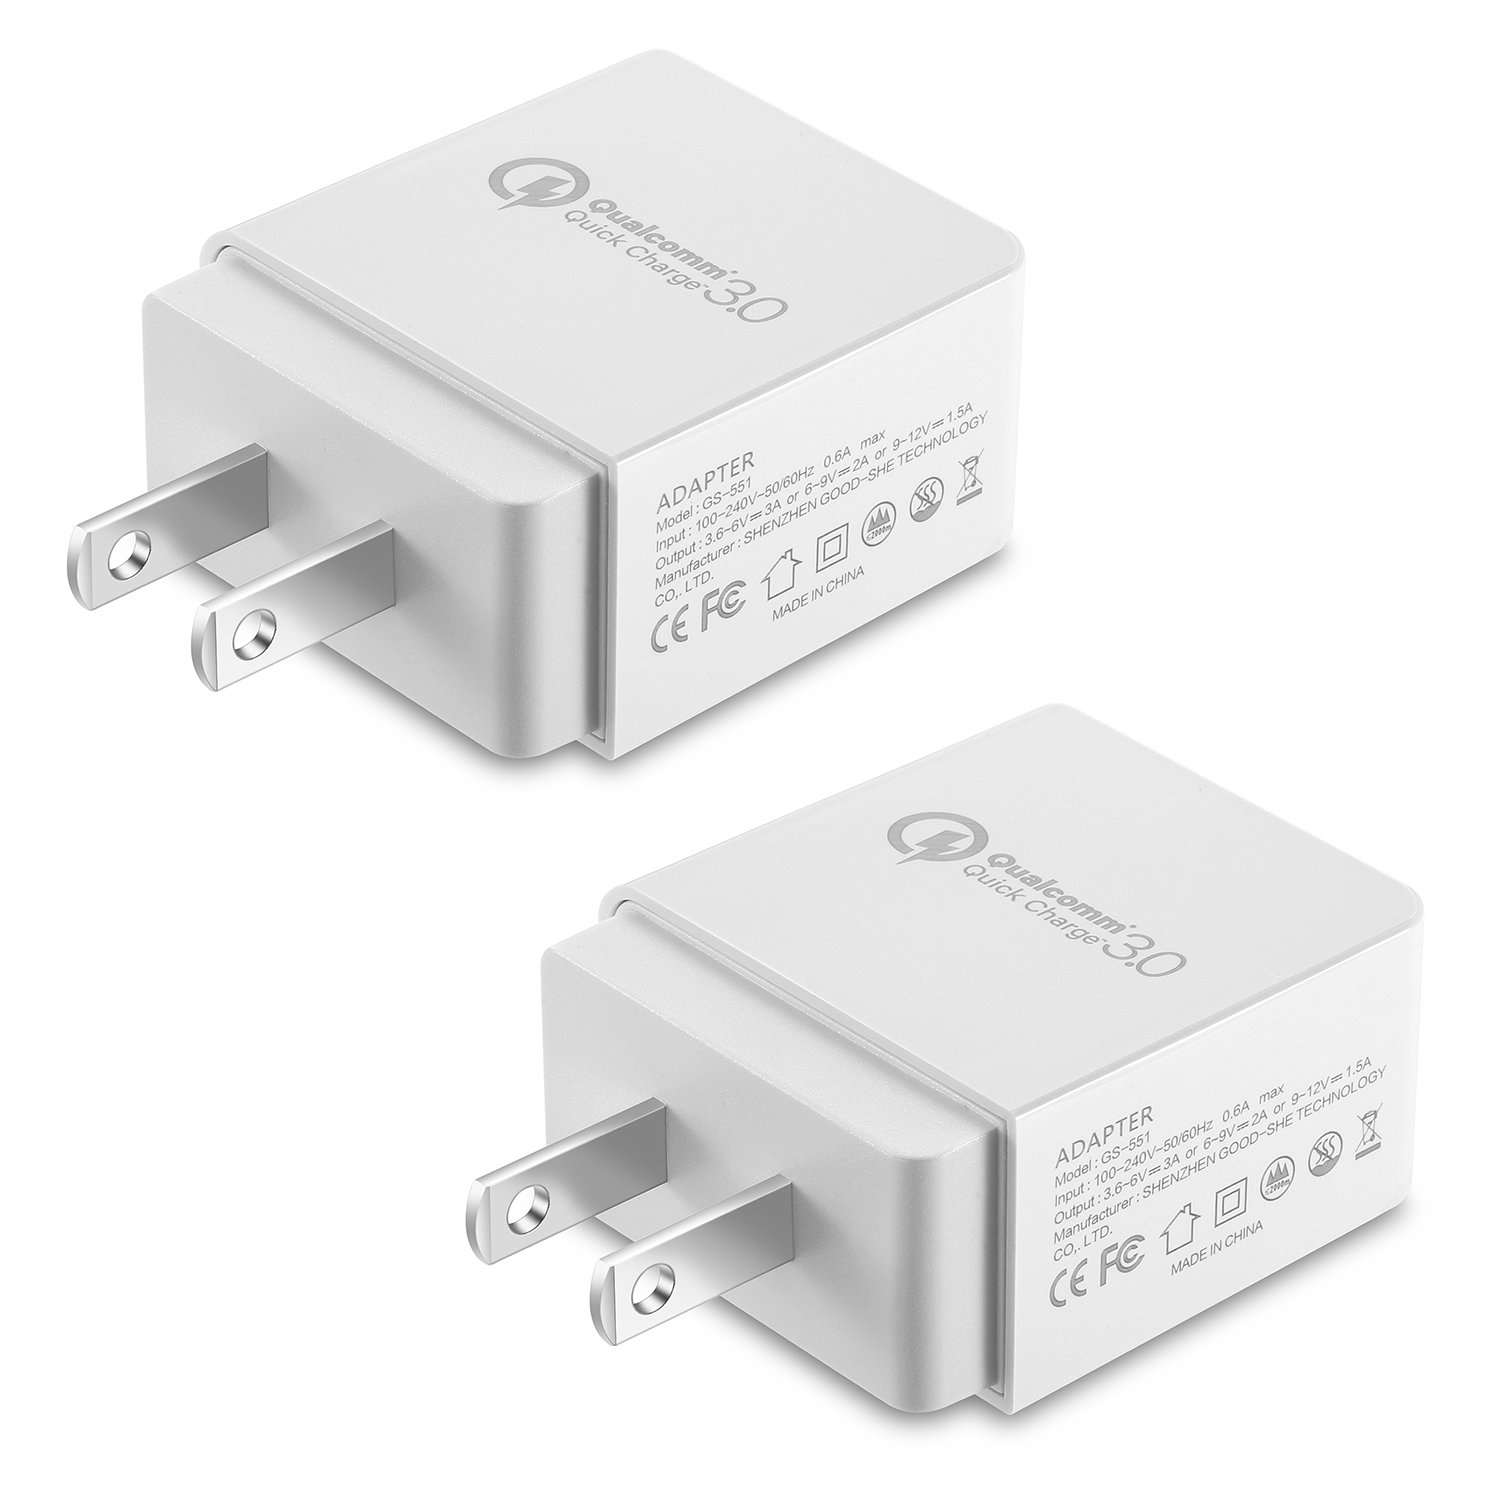 NEXGADGET Quick Charge 3.0 18W Wall Charger,Adaptive Fast Charger,Universal Portable USB Charger Plug Cube Compatible for iPhone X/8/7,iPad, Samsung, Android Phone and More, 2 Pack-White